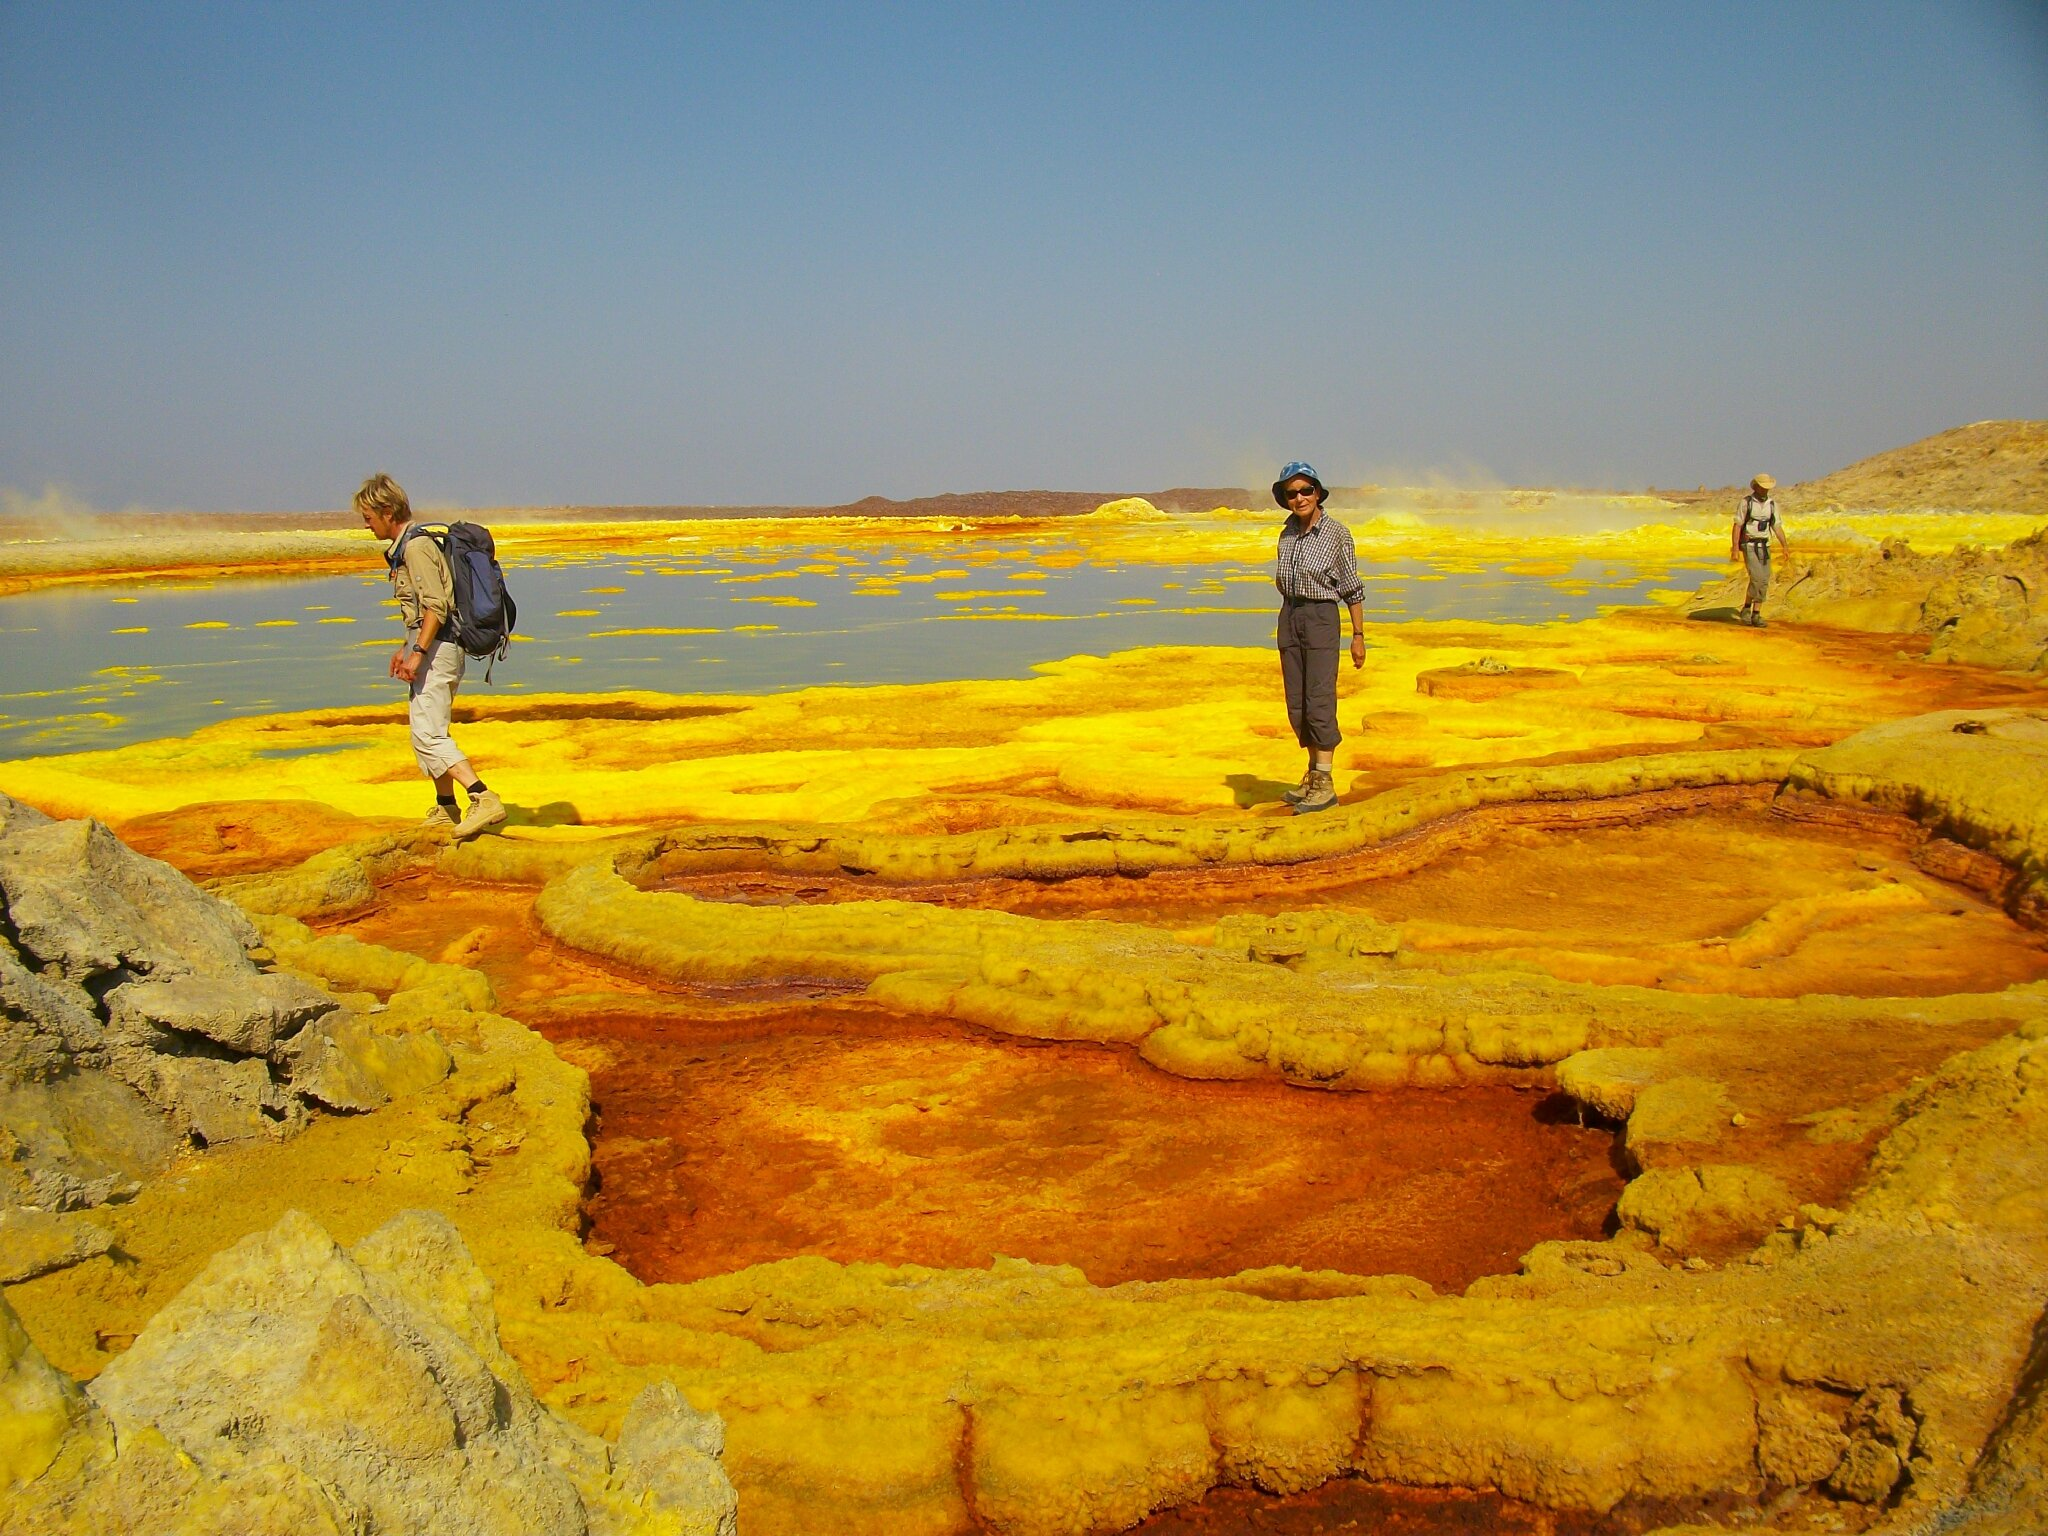 visitors of abyss landtour in danakil dallol